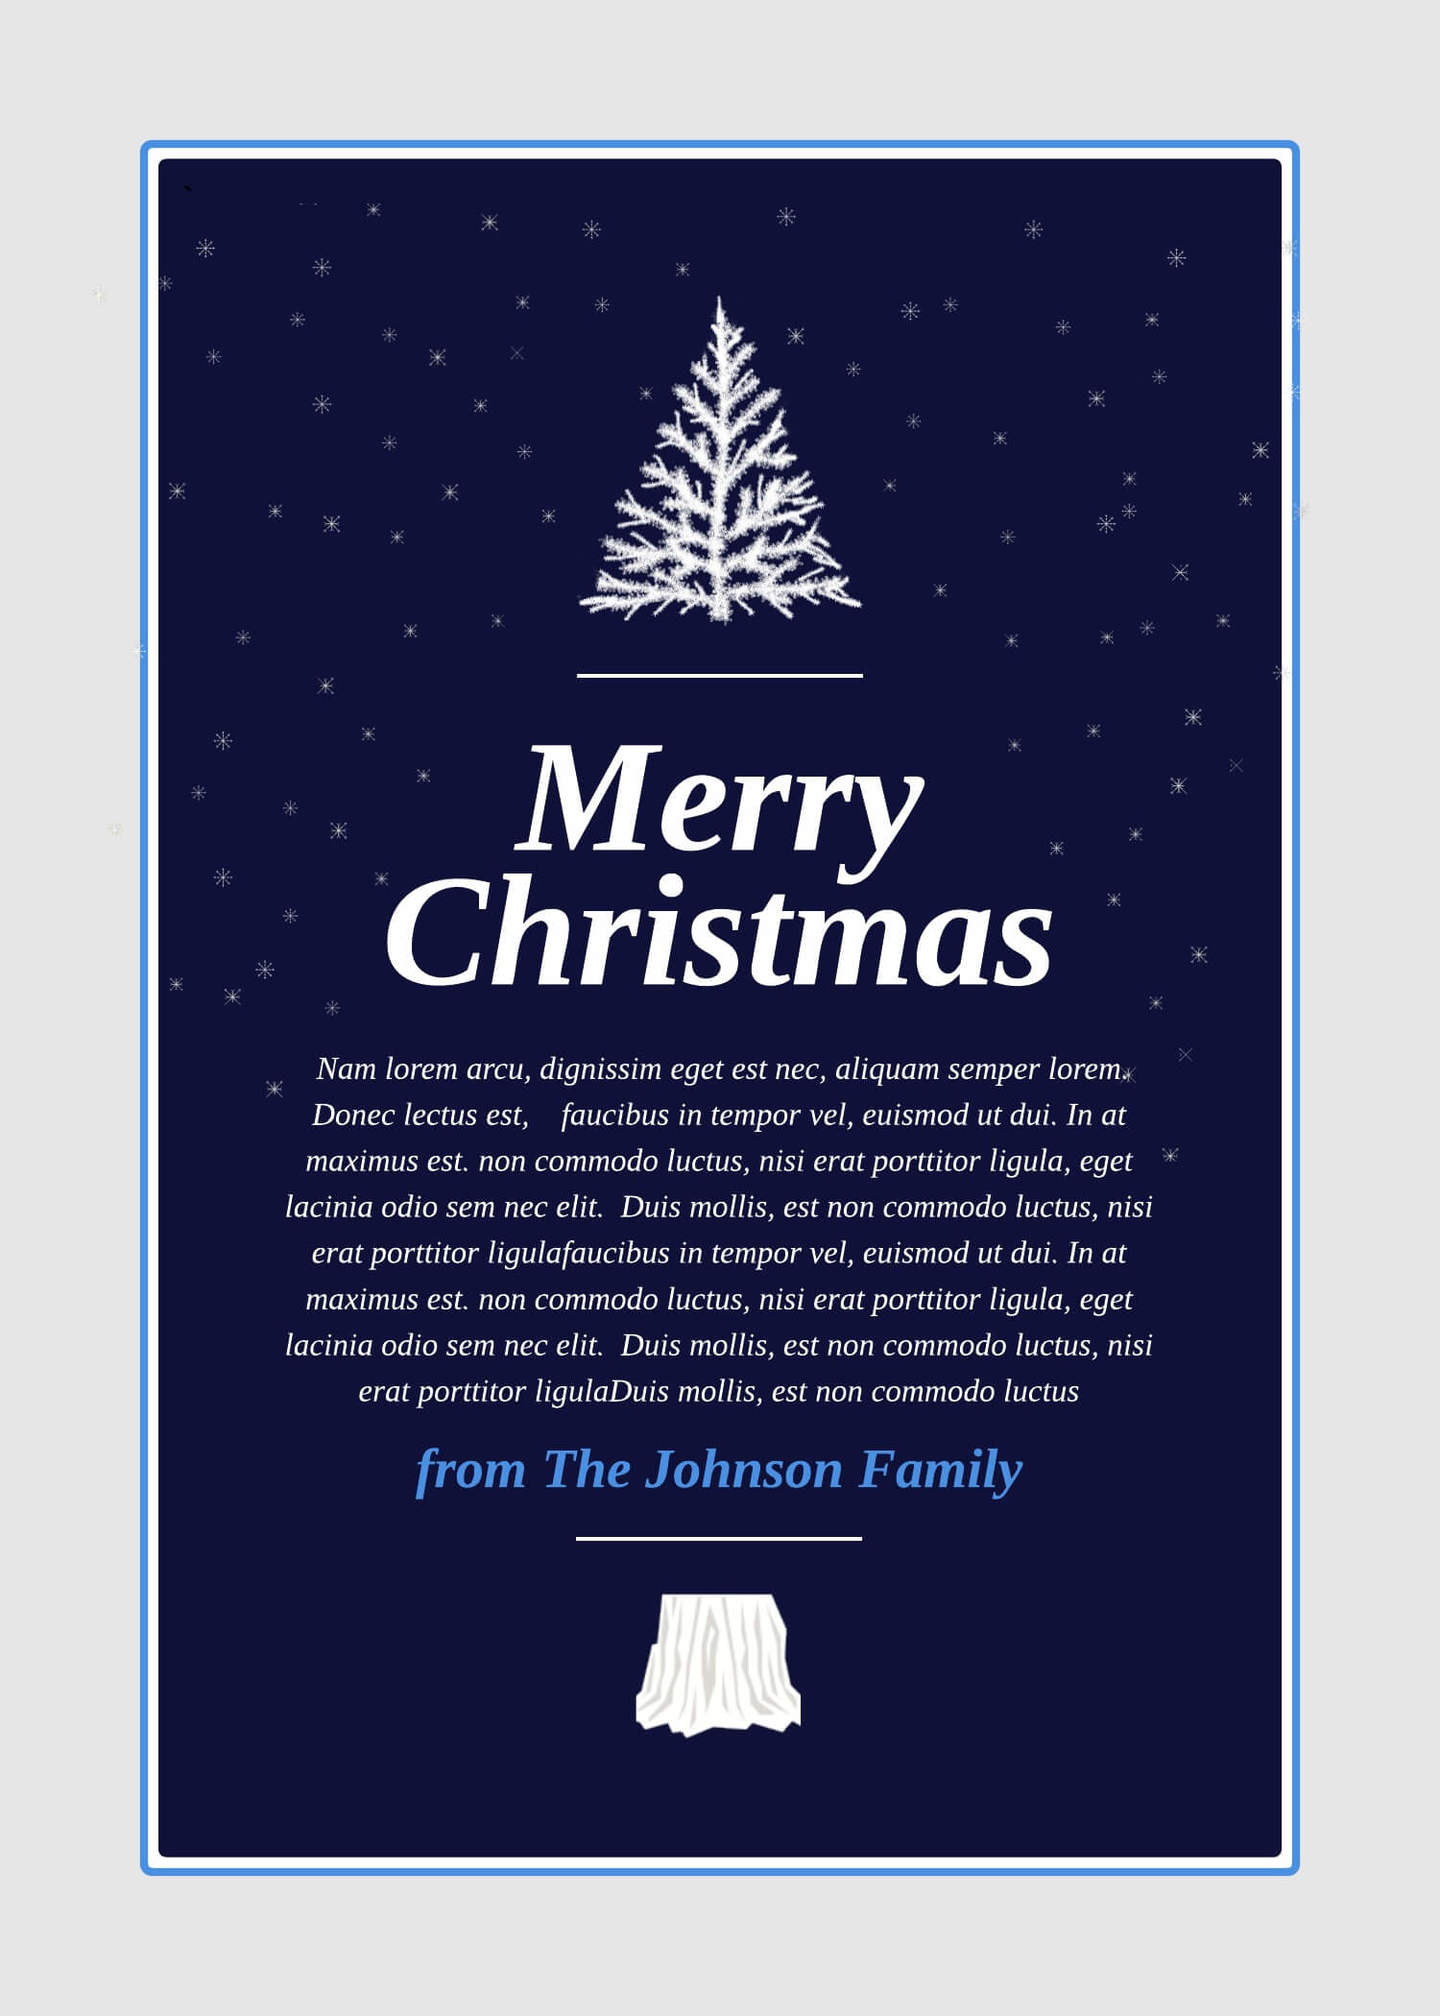 18 Free Holiday Templates Examples Lucidpress – Holiday Card Template